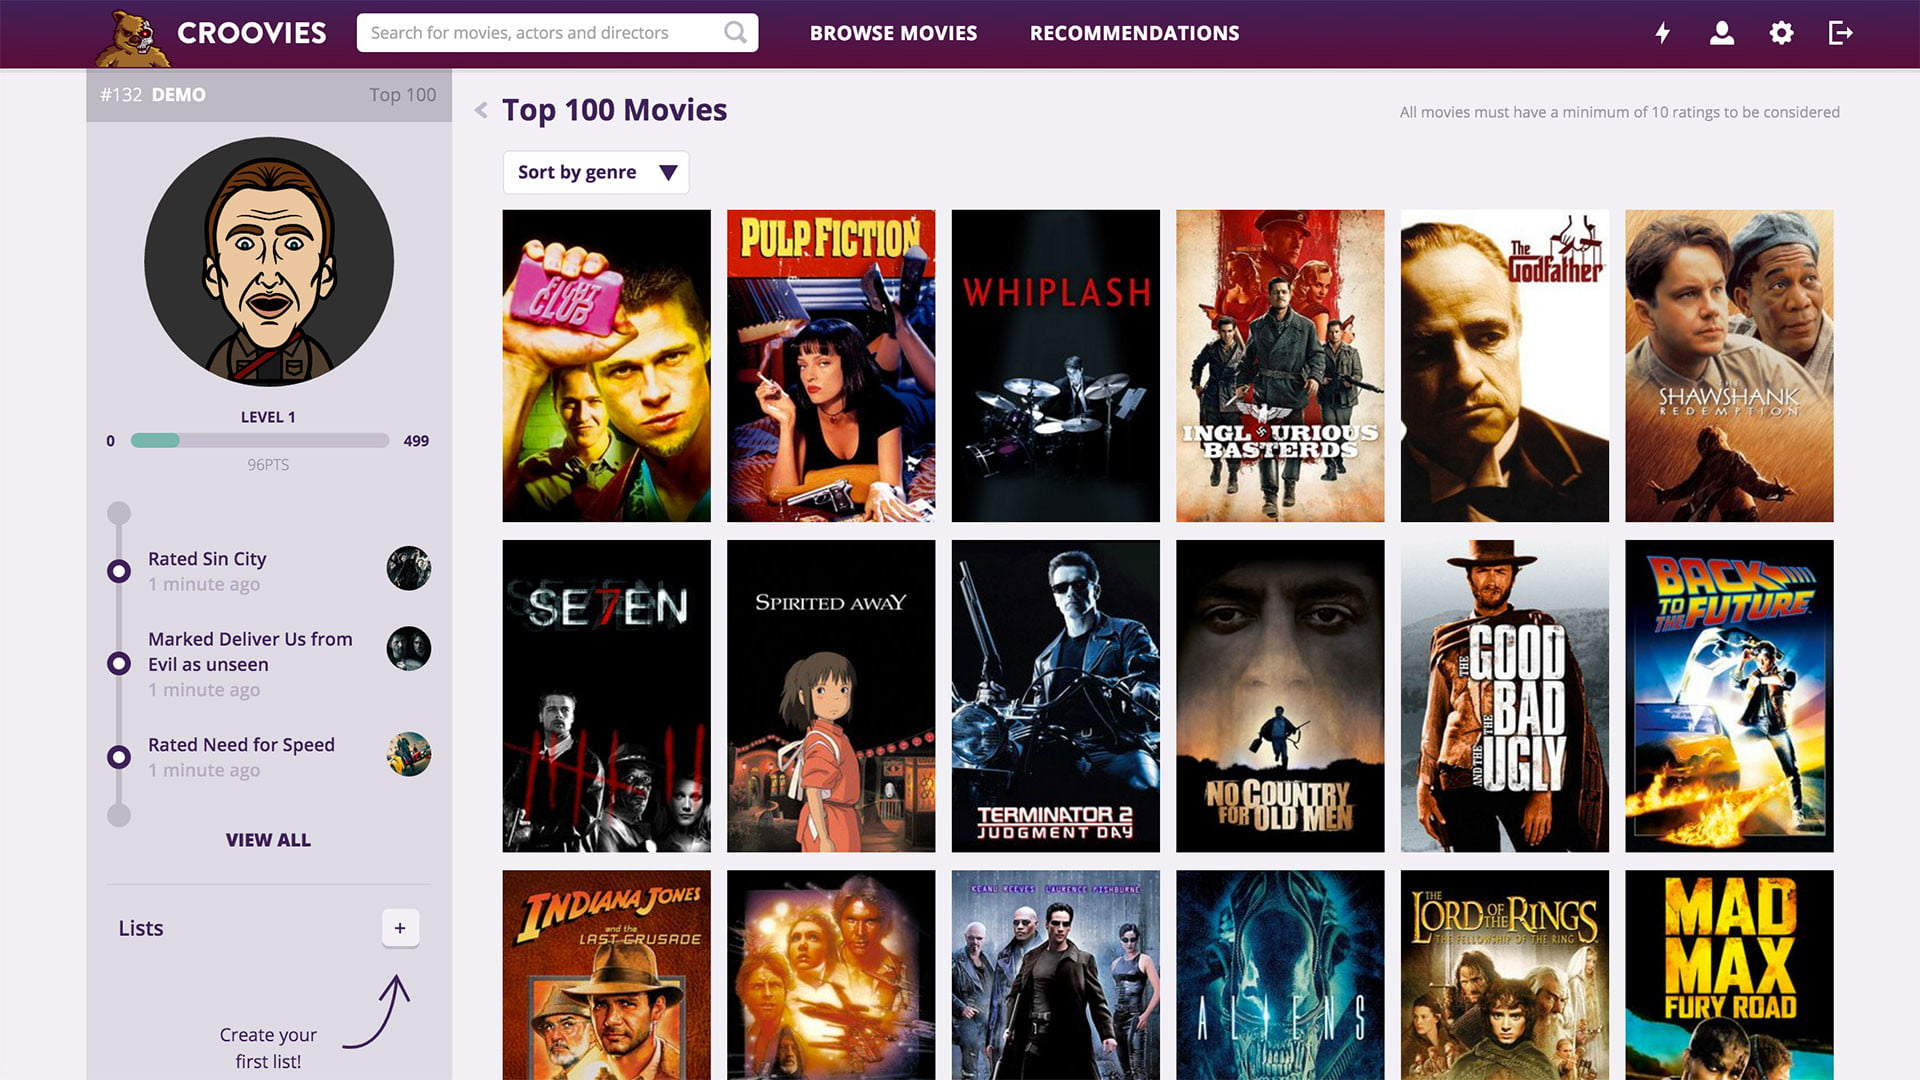 croovies movie ratings and recommendations screenshot 2